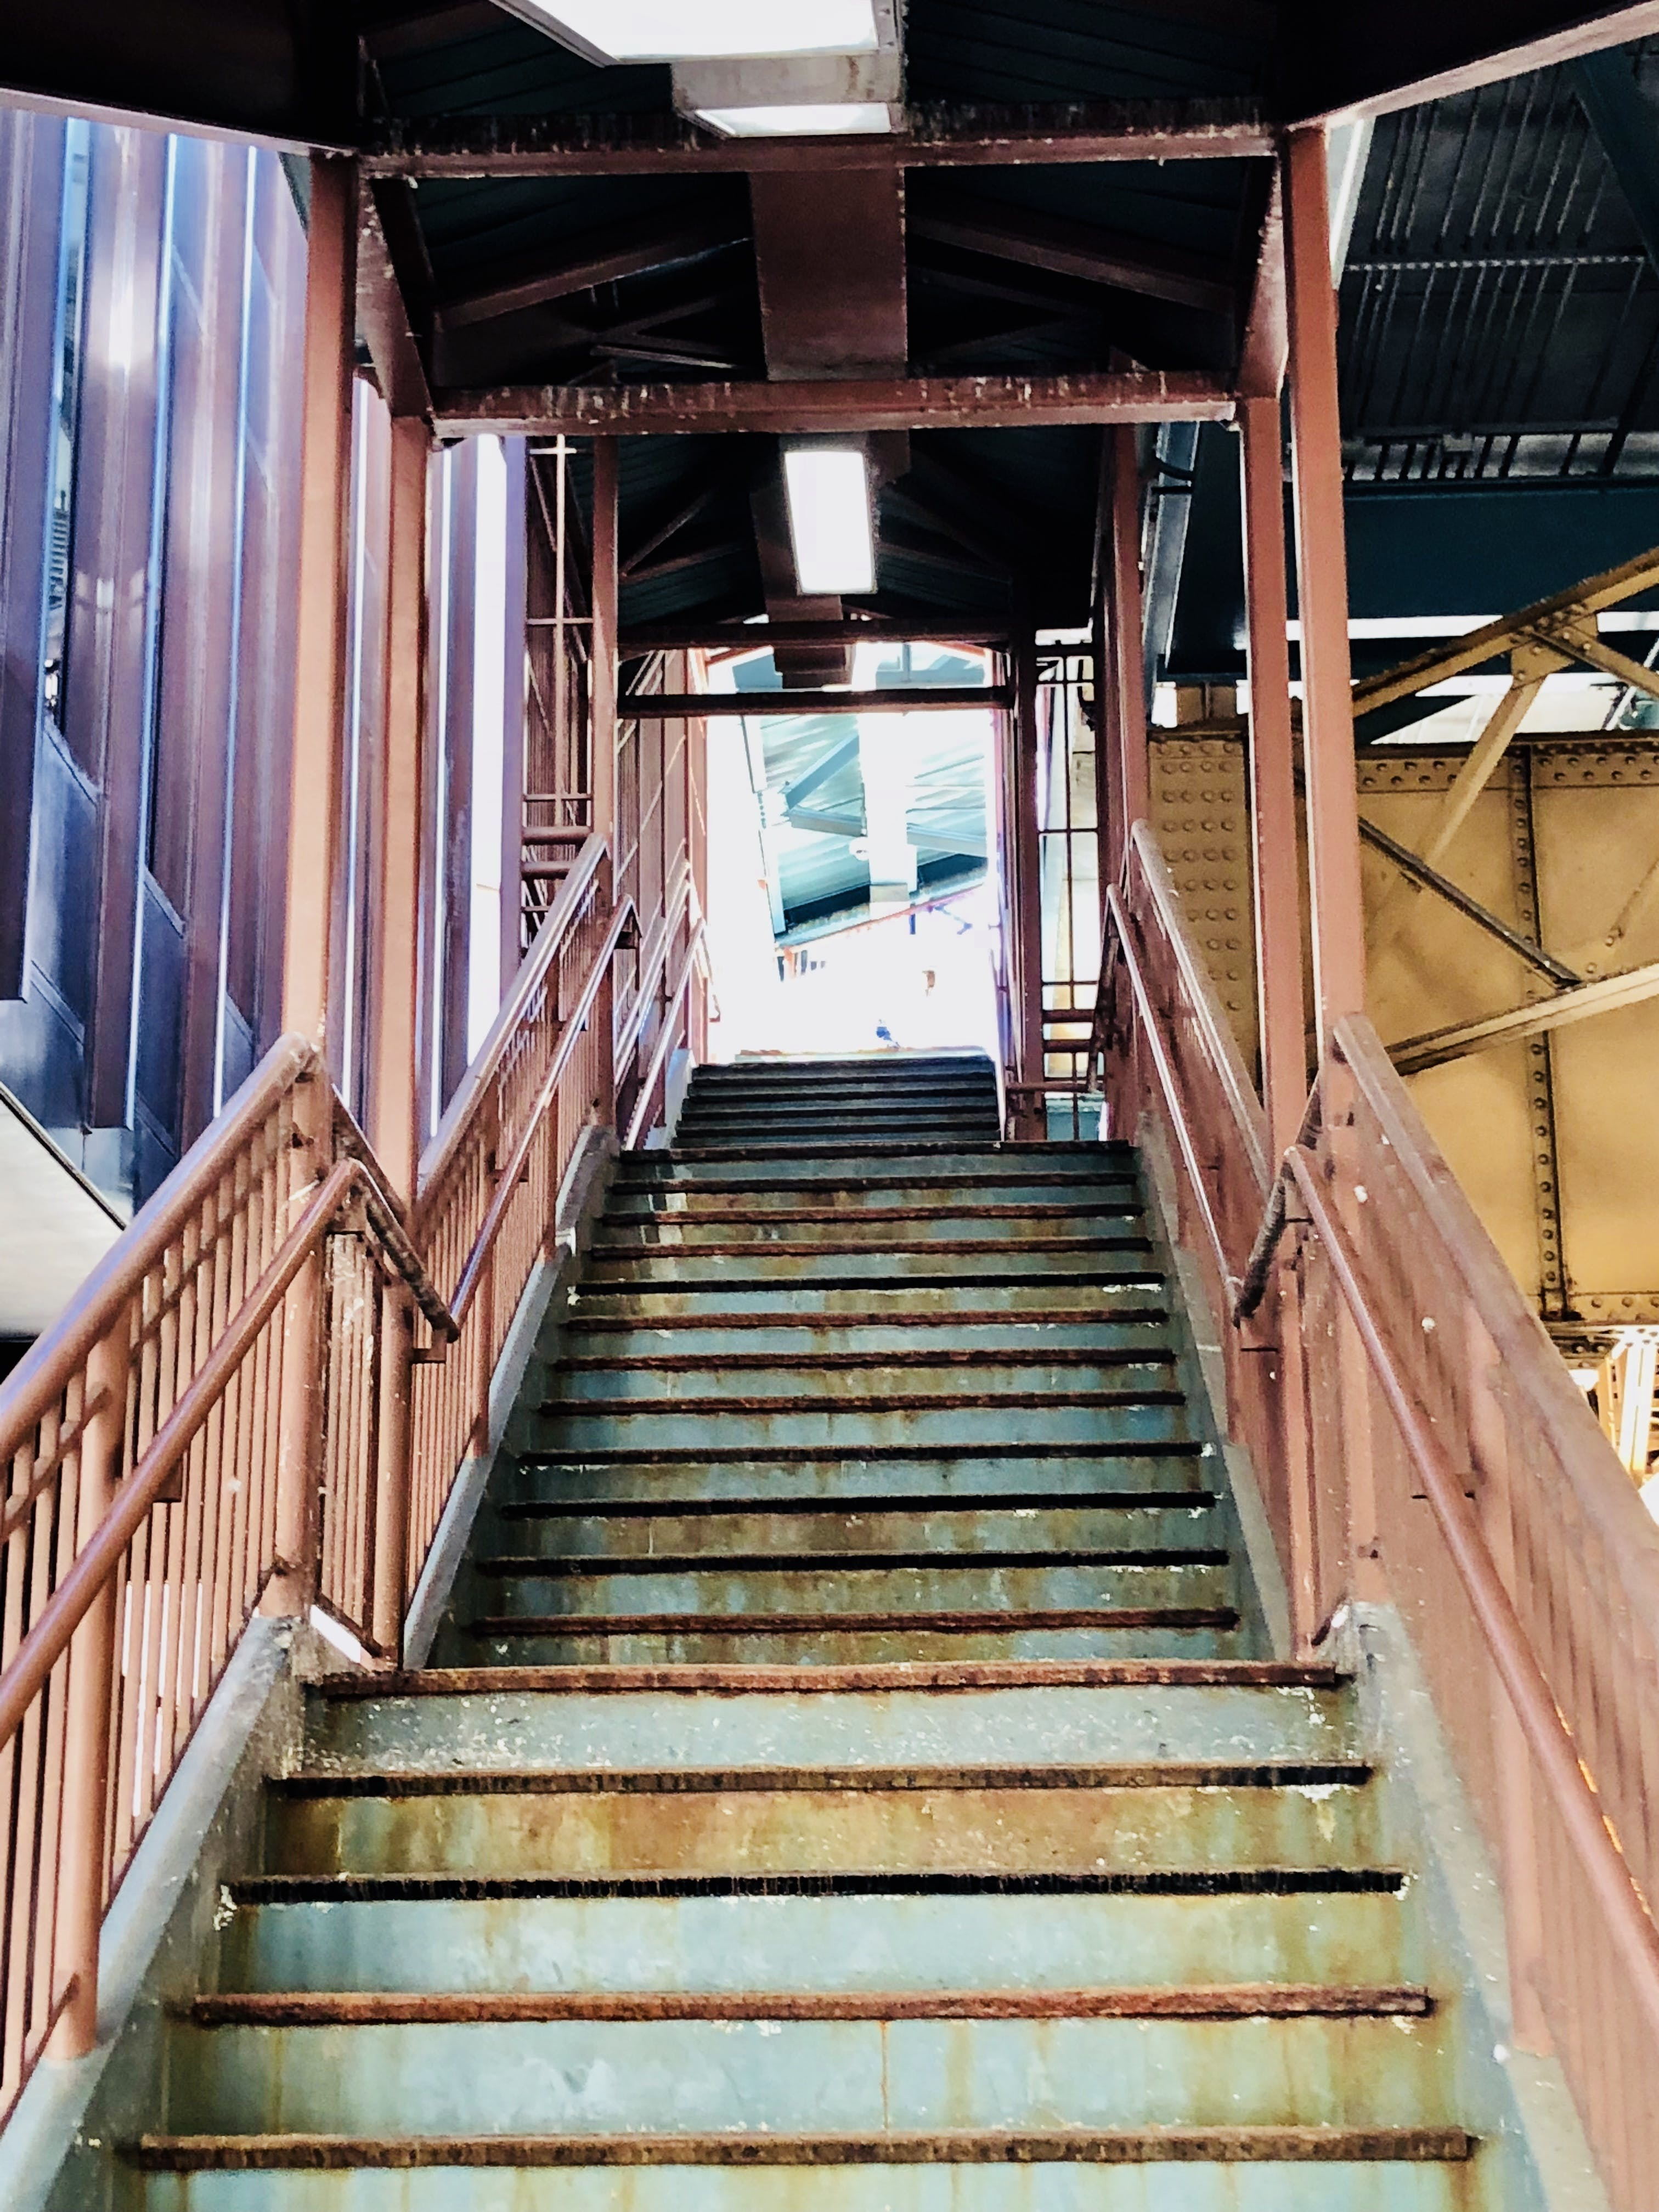 Free stock photo of platform, staircase, steps, train